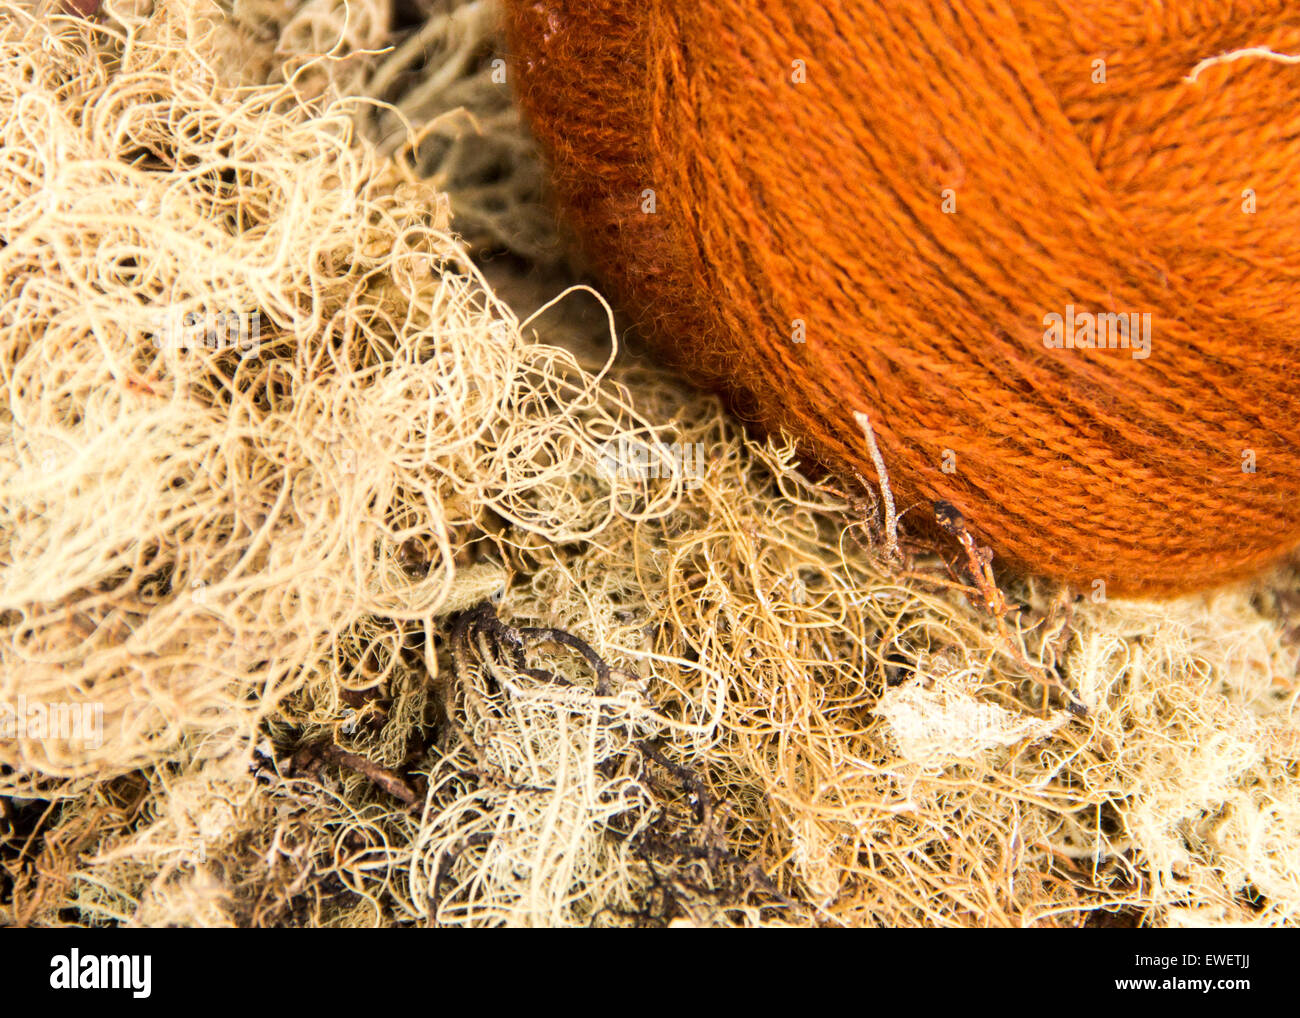 Ball of yarn with natural fibres used to dye the wool in rural Peru weaving demonstration. - Stock Image